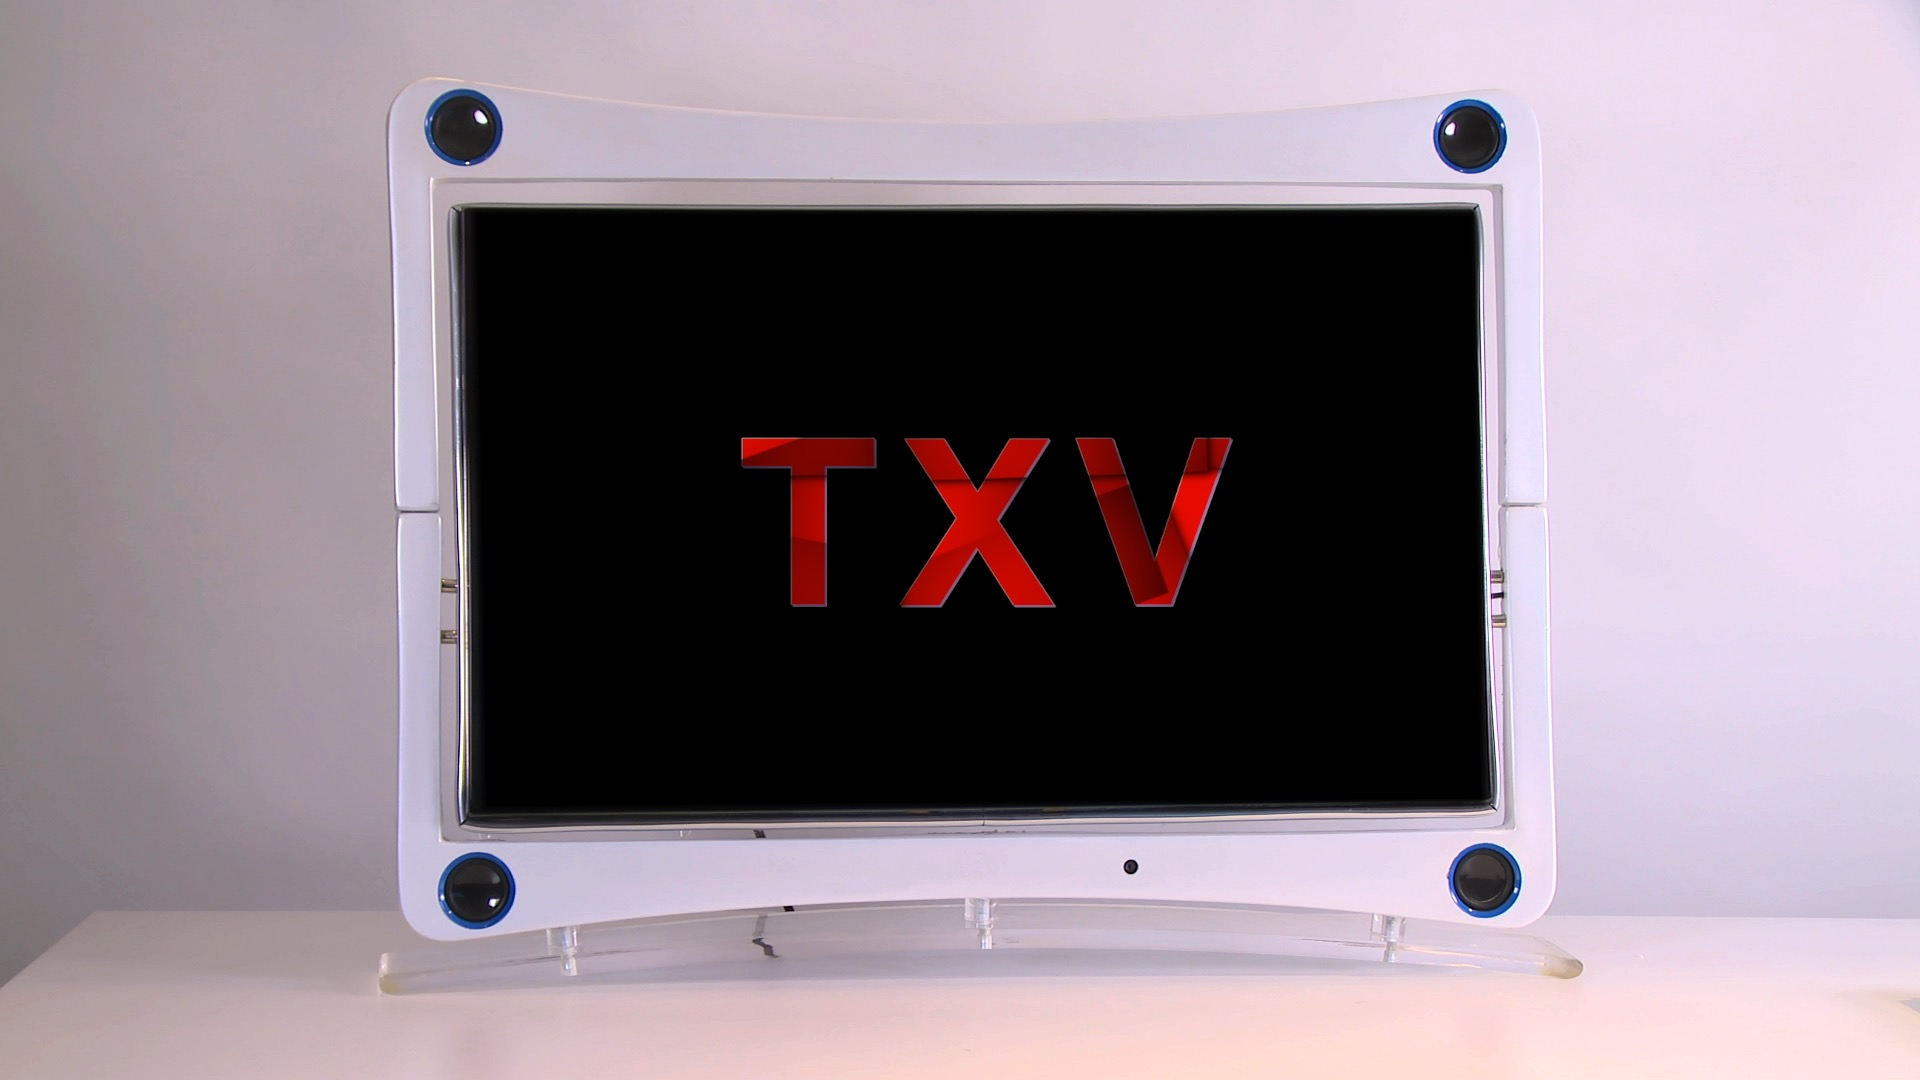 TXV – The Future in the Palm of Your Hand!